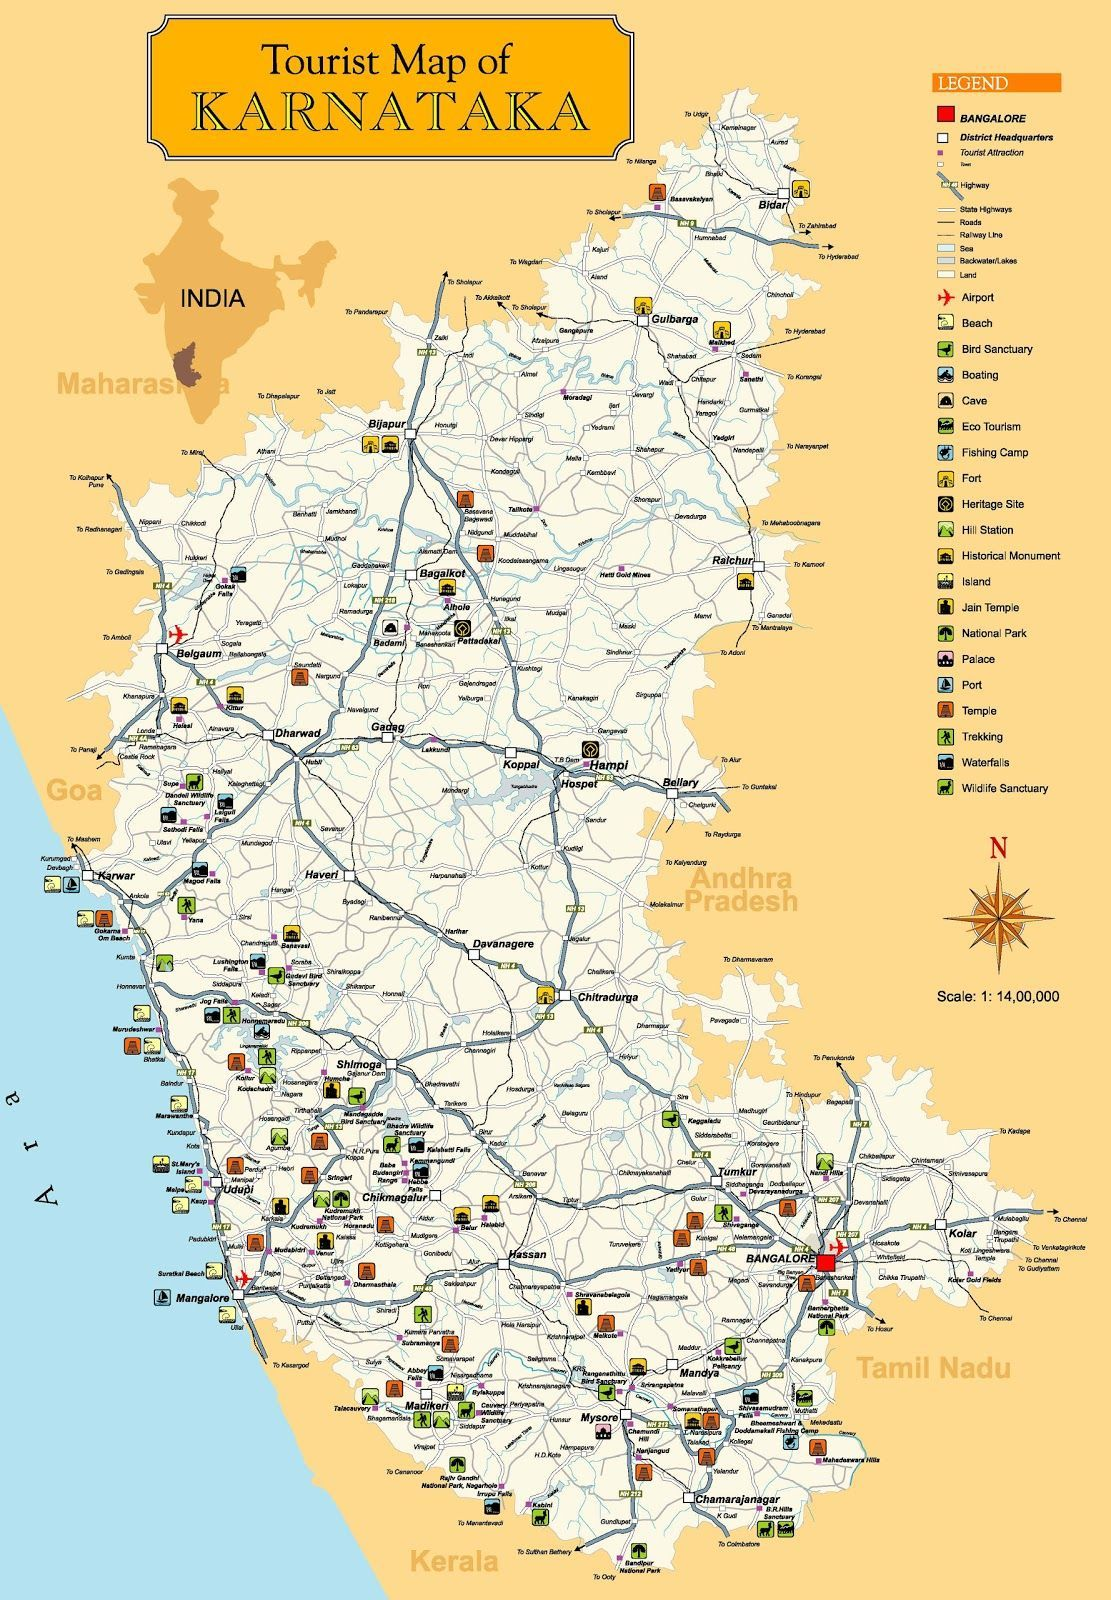 karnataka tourist maps - Google Search | india | Tourist map ... on physical features of india, google docs, google chrome, live satellite map india, google map of england and scotland, google sky, google voice, google map secrets 2014, skype india, google street view, google map maker, vimeo india, web mapping, satellite map images with missing or unclear data, google pakistan, google 1998 version, google latitude, google goggles, google earth, google street view india, google mars, google moon, route planning software, bangalore india, yahoo! maps, microsoft india, google search, google translate, google mapquest, mcmahon line india, show place in india, google pune map, google finance india, bing maps,